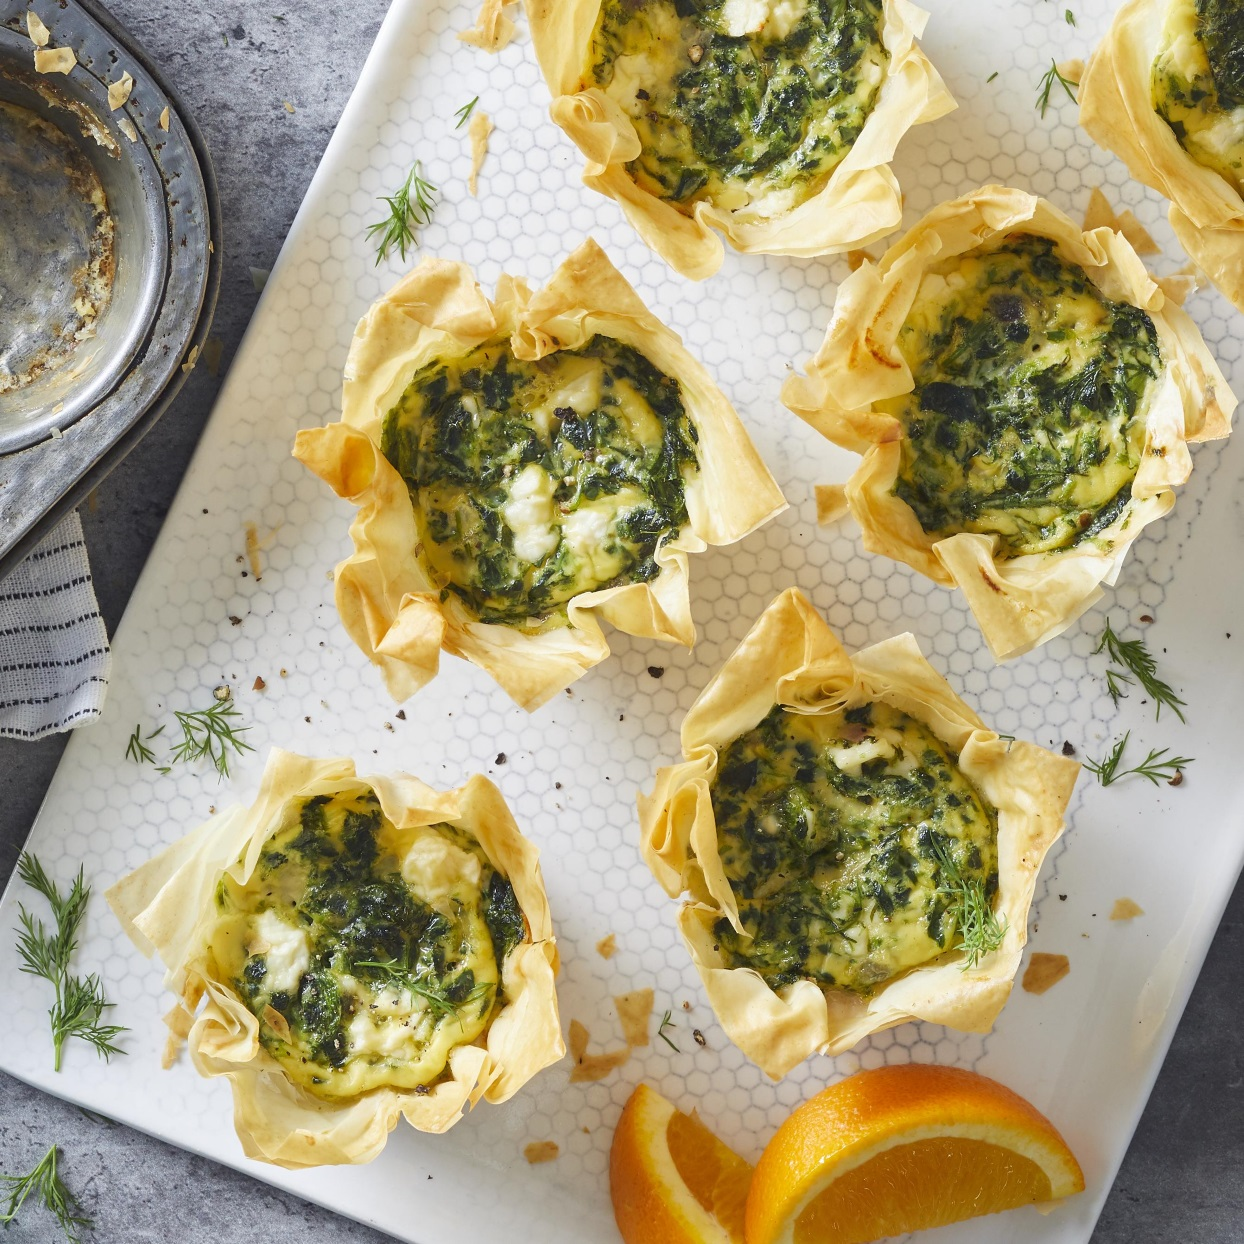 Spinach, onion and feta cheese flavor these Greek-inspired spanakopita omelets with crispy phyllo crusts.